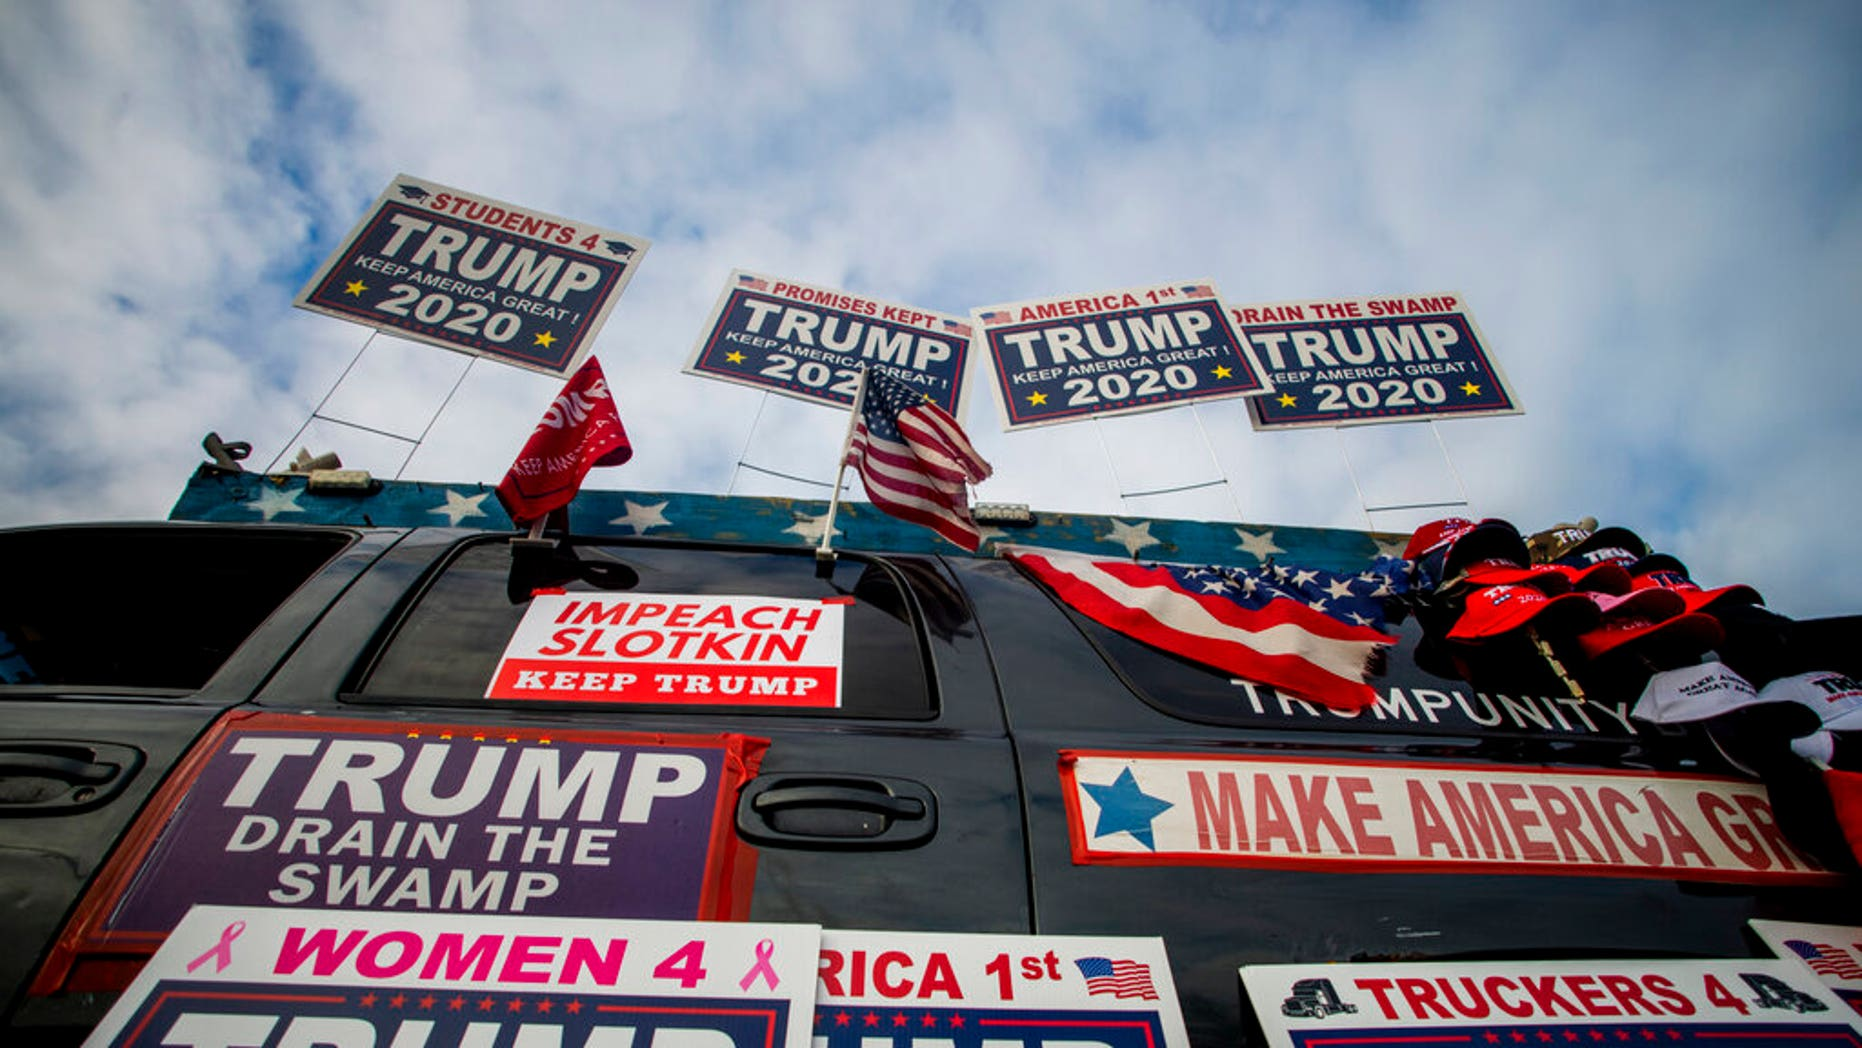 Trump supporters protest outside a town hall meeting where U.S. Rep. Elissa Slotkin (D-Mich.) is speaking on Monday, Dec. 16, 2019, in the Oakland Center at Oakland University in Rochester, Mich. (Jake May/The Flint Journal via AP)